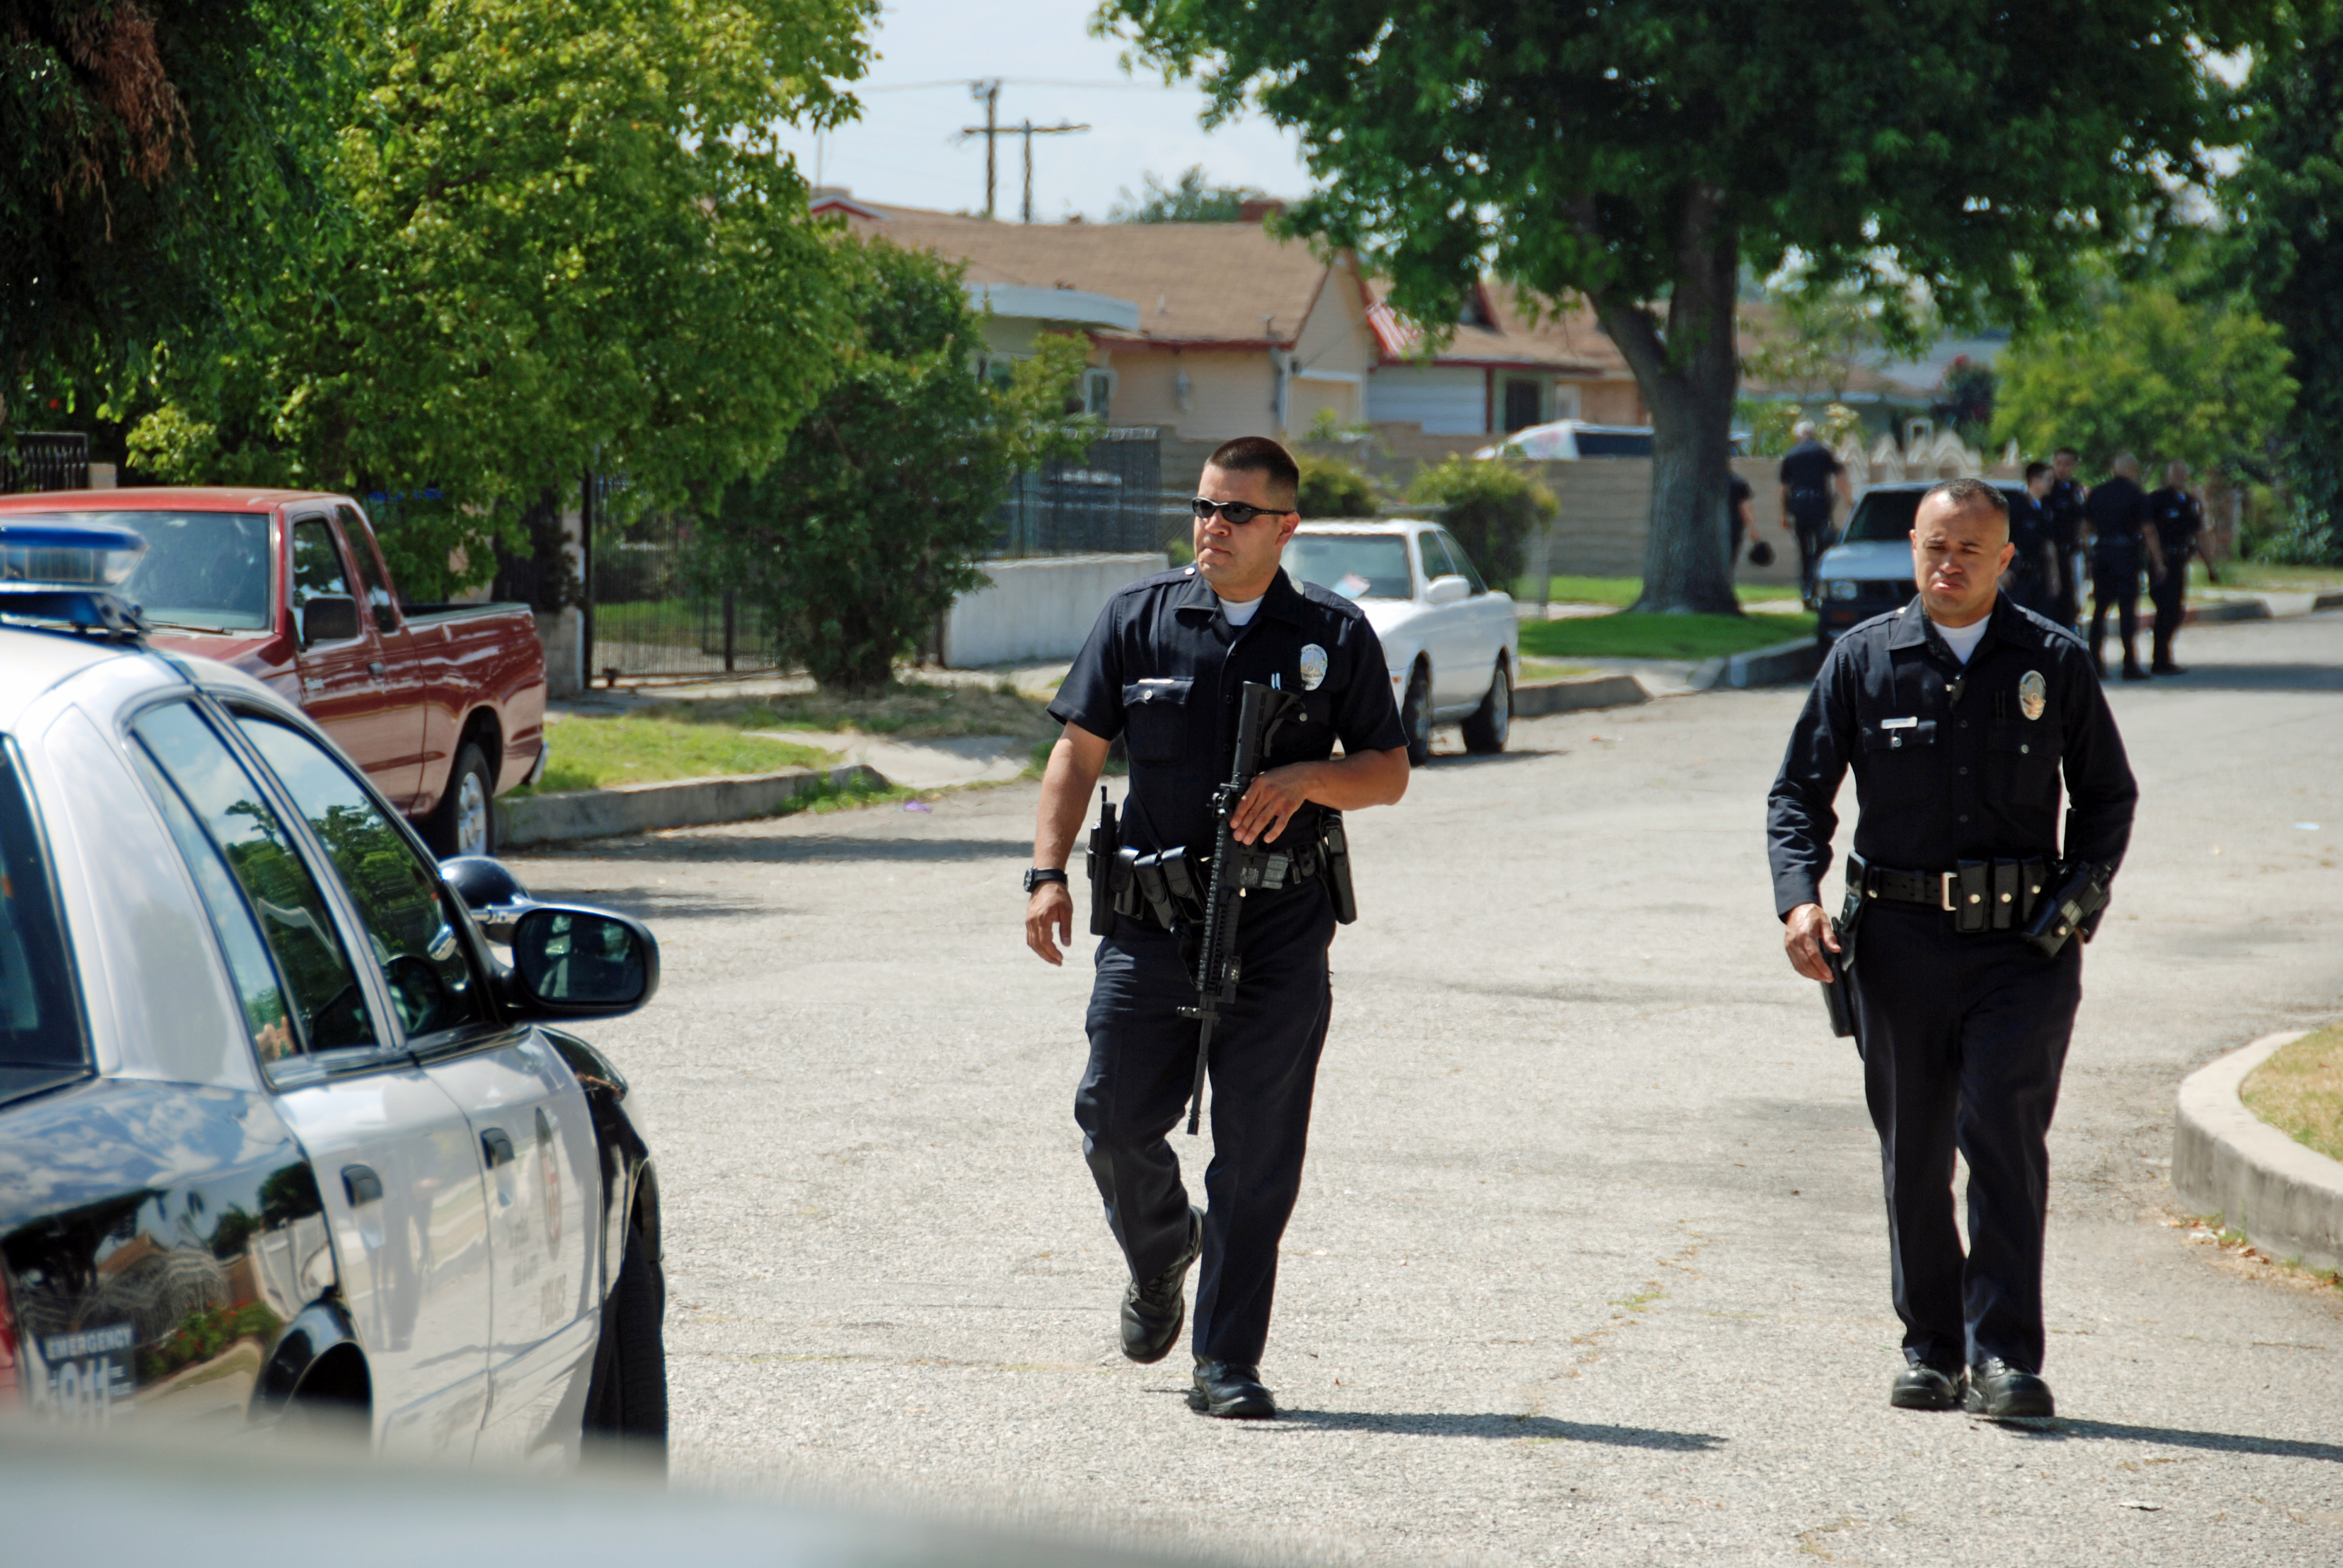 On July 1 at around 3:15 pm an injury report involving an LAPD bicycle officer was made. Canyon News, Lapd officer